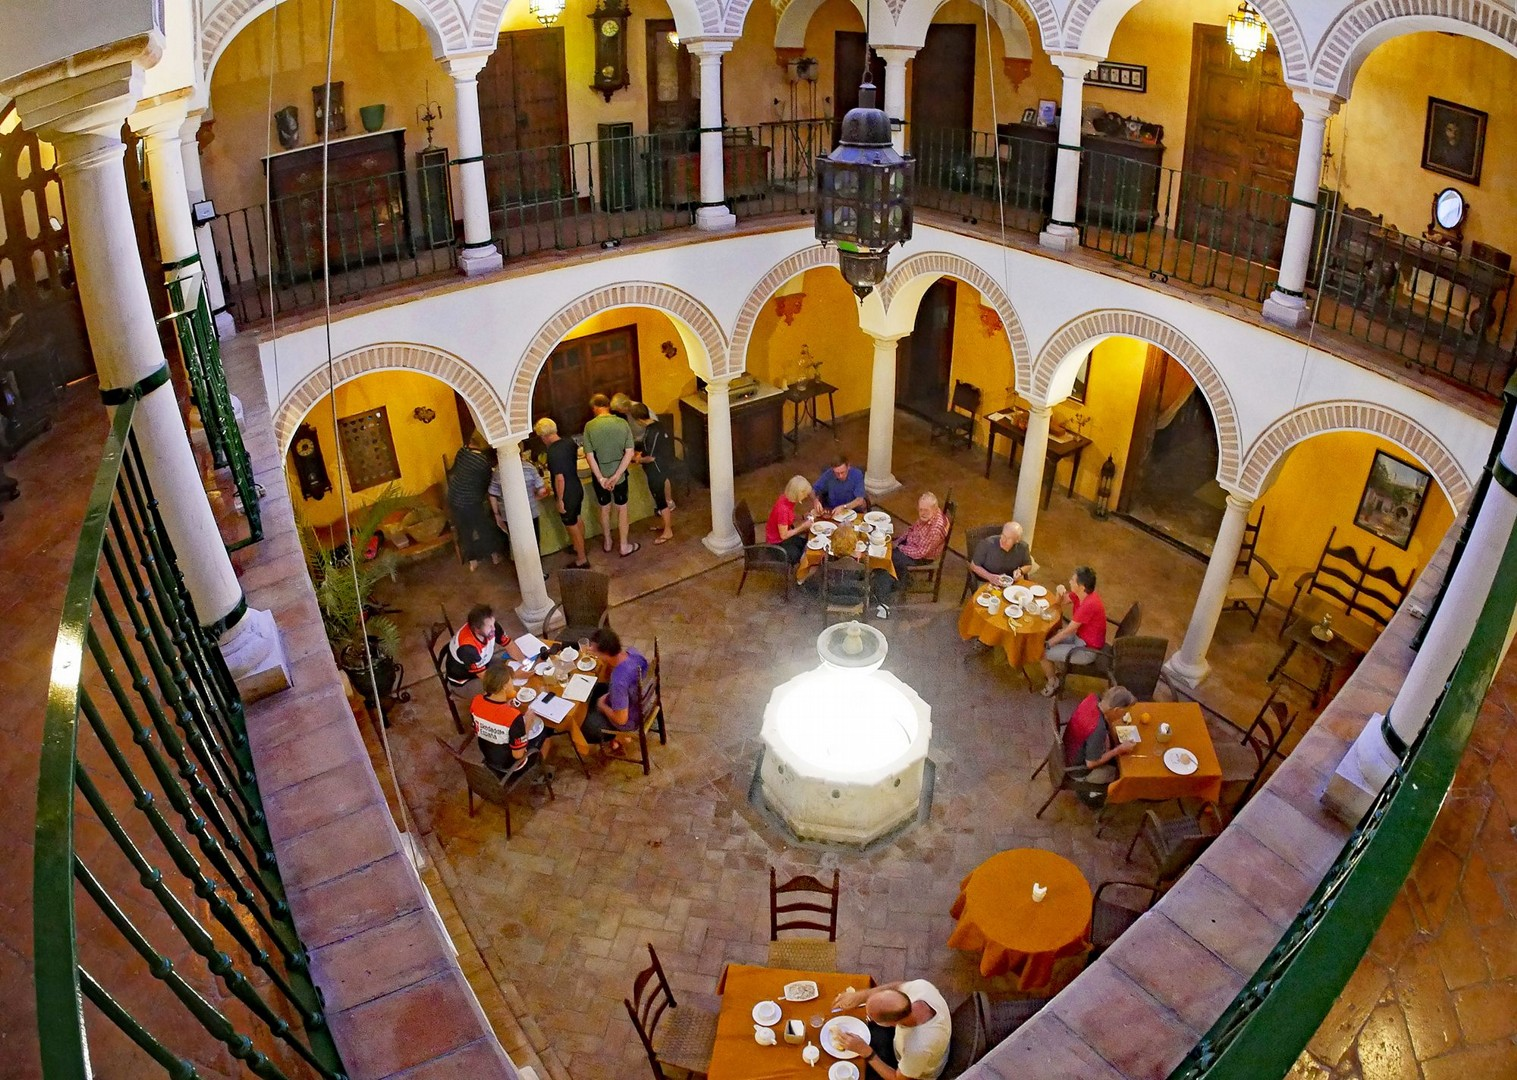 leisure-cycling-holiday-in-spain-granada-to-seville.jpg - Spain - Granada to Seville - Guided Leisure Cycling Holiday - Leisure Cycling